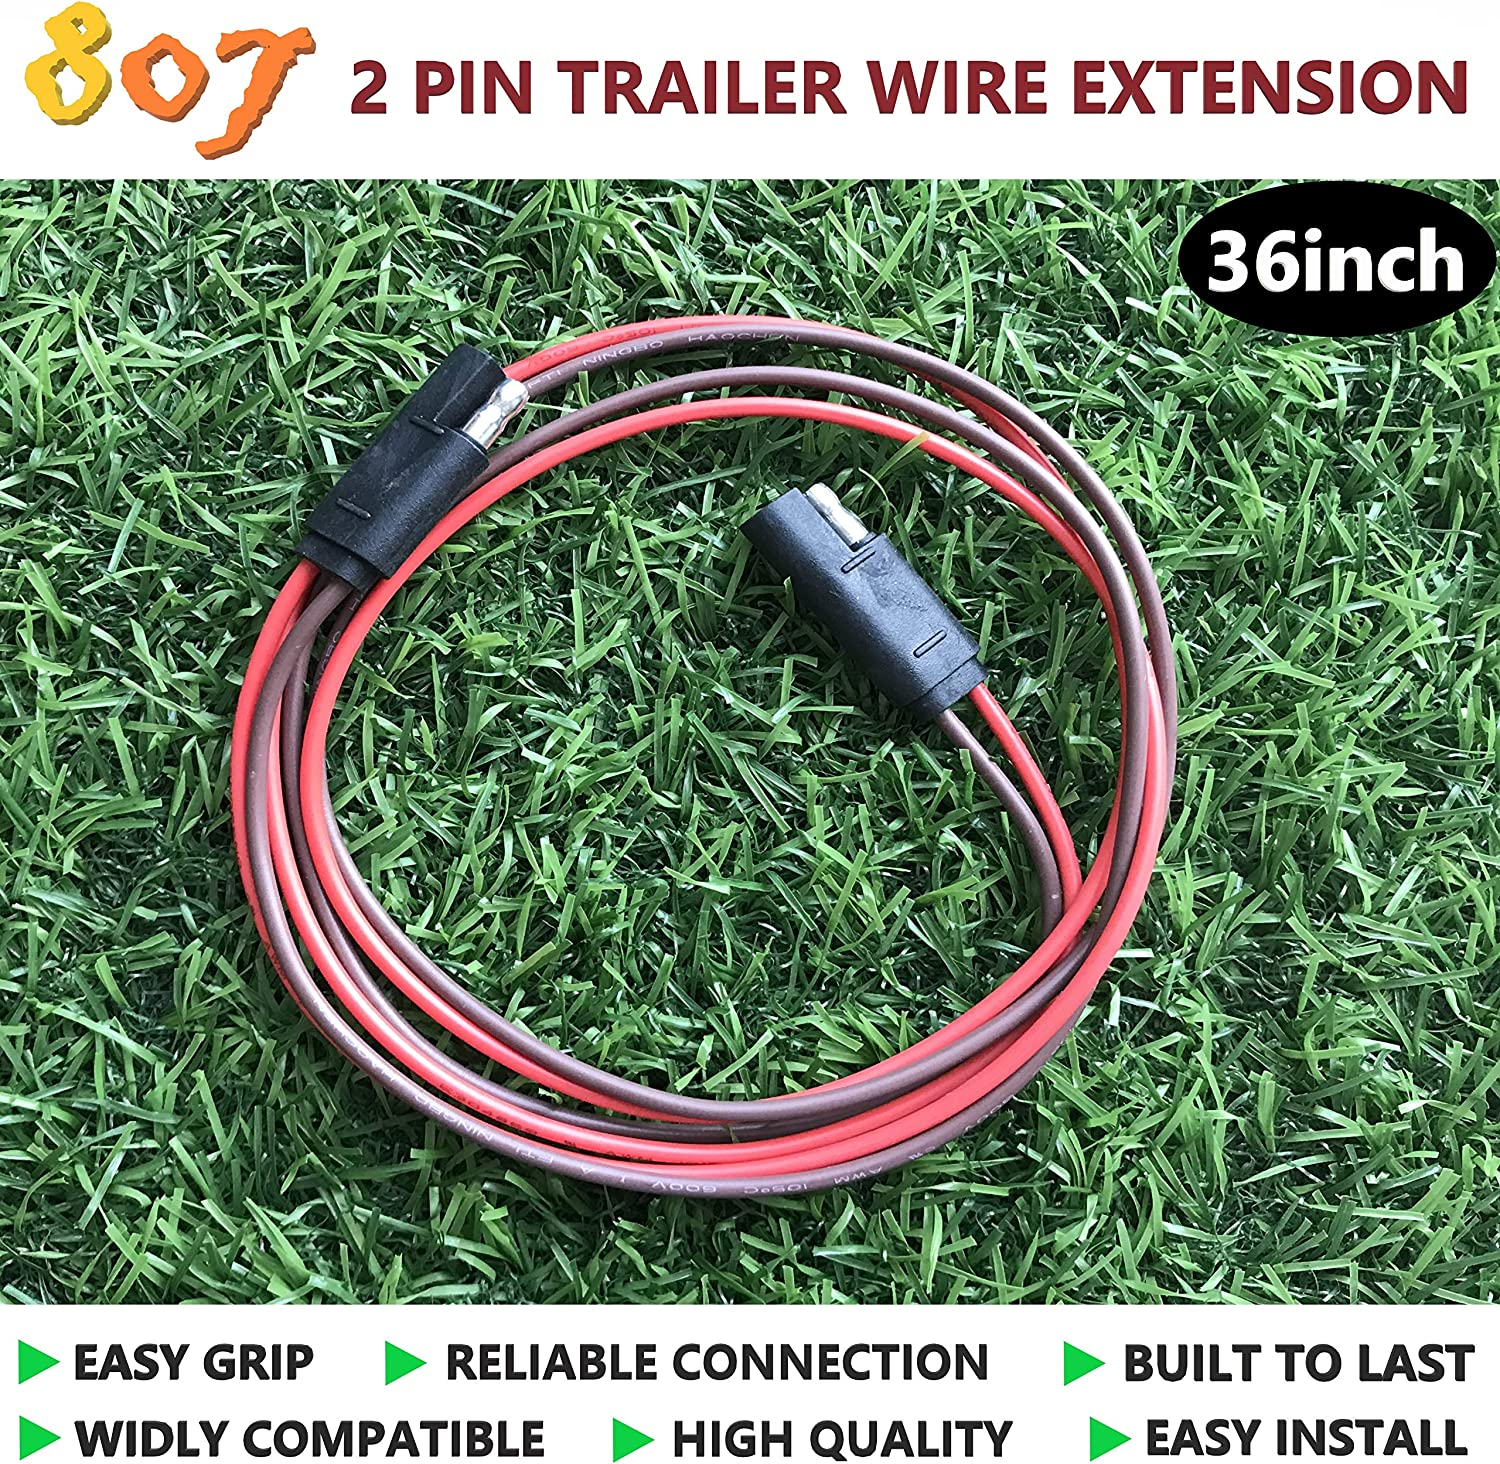 8 Way Square 807 2//3//4//5//6//8 Way Male and Female Trailer Wire Extension Connector,2//3//4//5//6//8 pin Trailer Plug 36inch for LED Brake Tailgate Light Bars,Trailer Wiring Harness Extension Connector